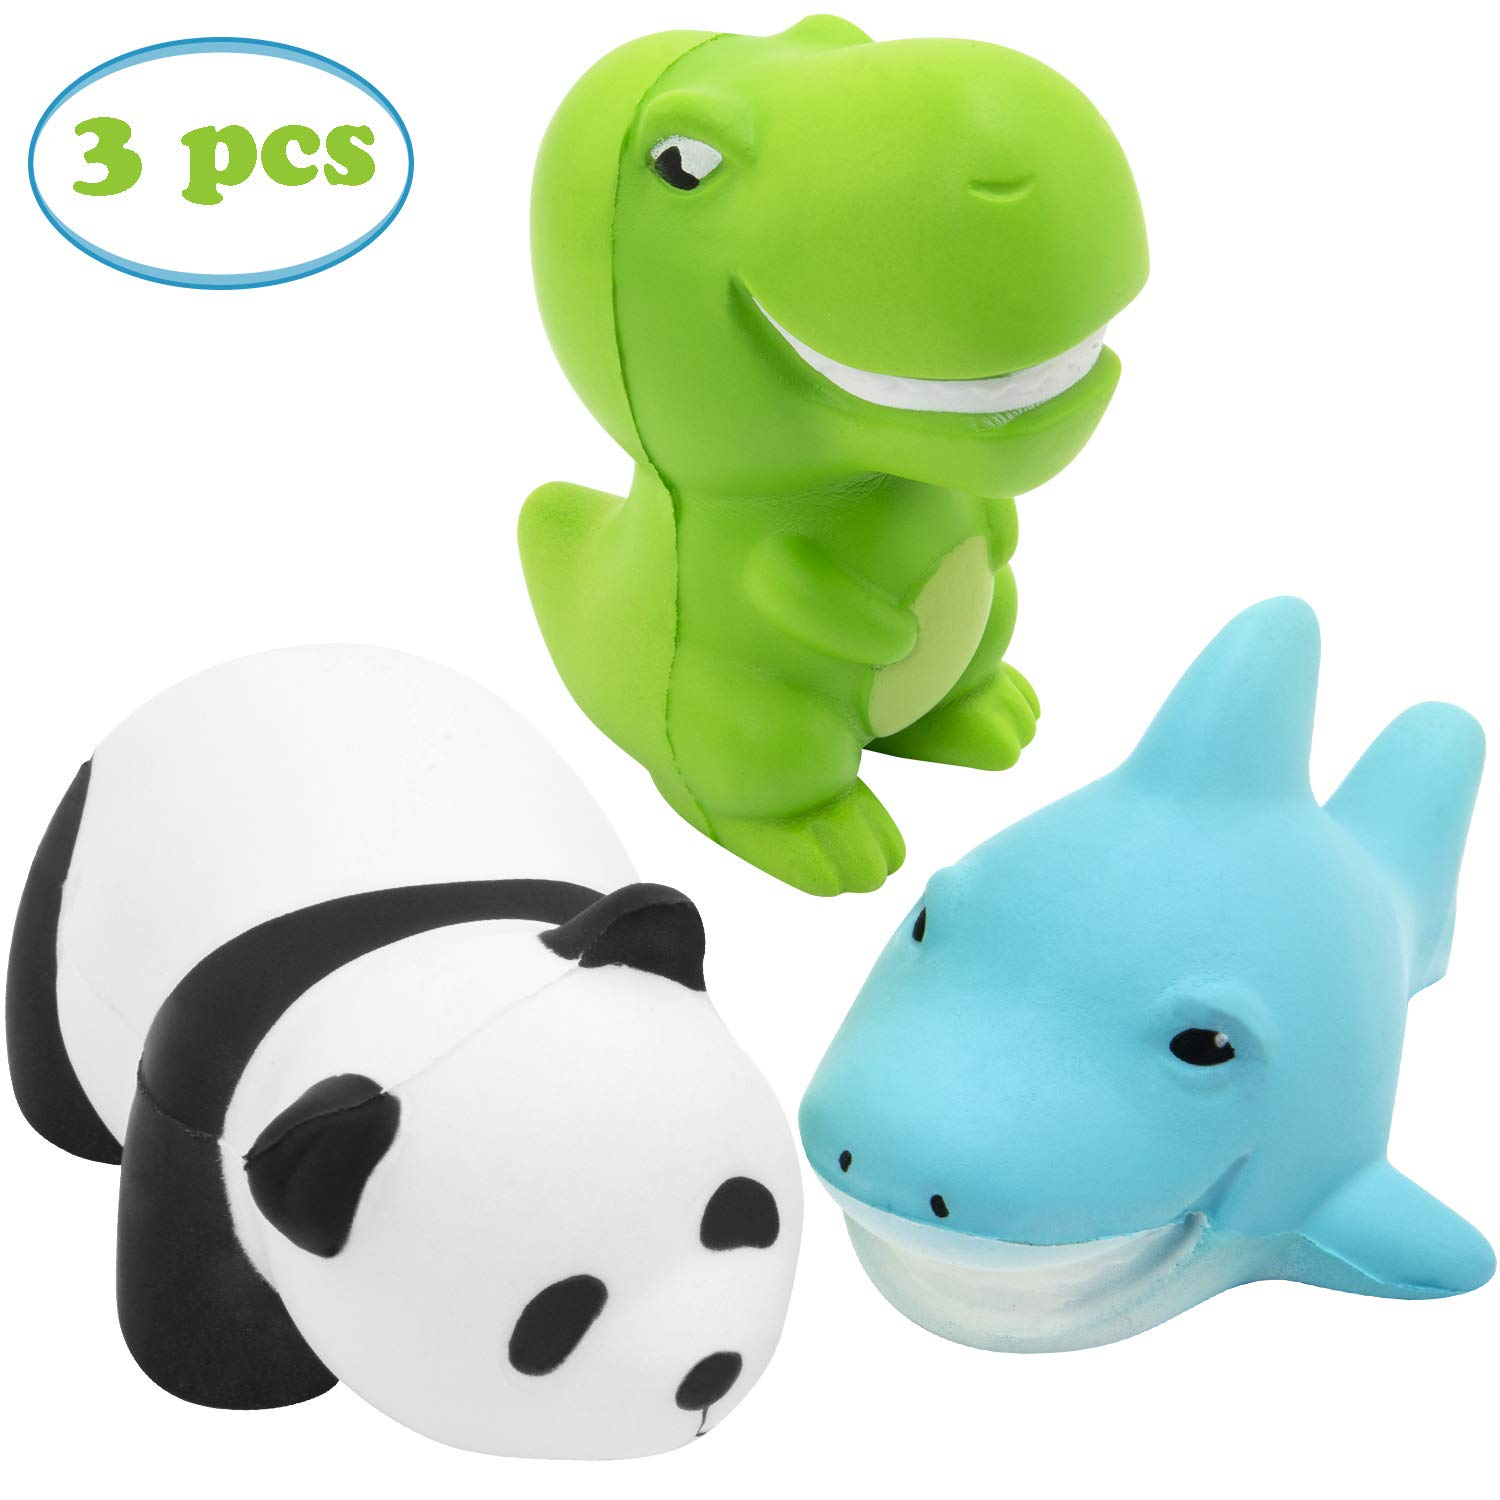 TEPSMIGO Squishy Toys, 5.2 inch Panda + 3.5 inch Dinosaur + 5.2 inch Shark, Animal Slow Rising Squishies Sweet Scented Vent Charms Stress Relief Toy, for Kids Audlts (3 Pieces) by TEPSMIGO